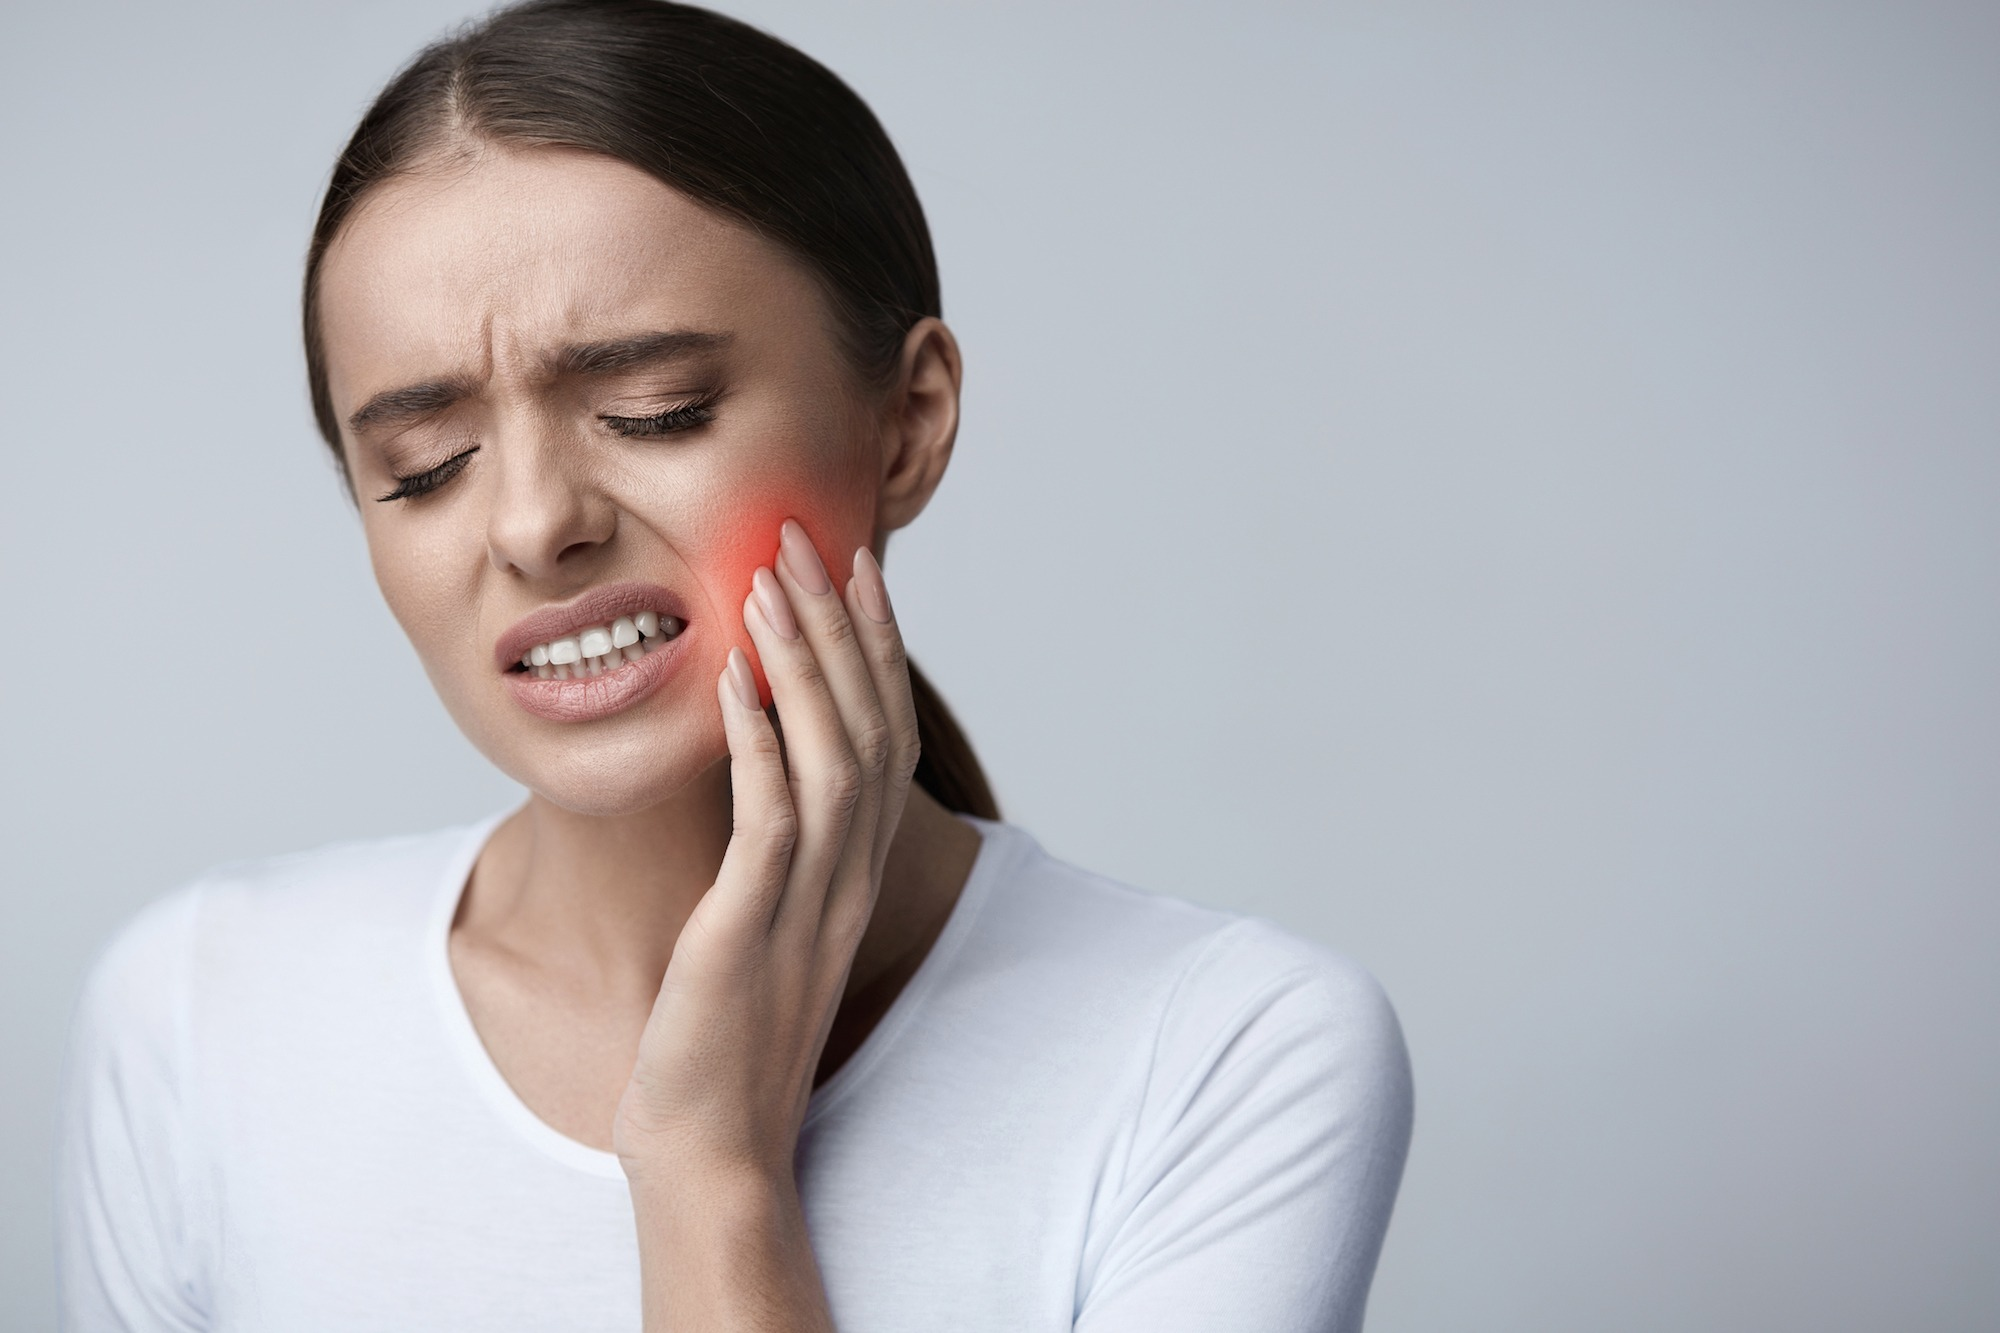 Tooth Pain: What is Causing My Toothache?